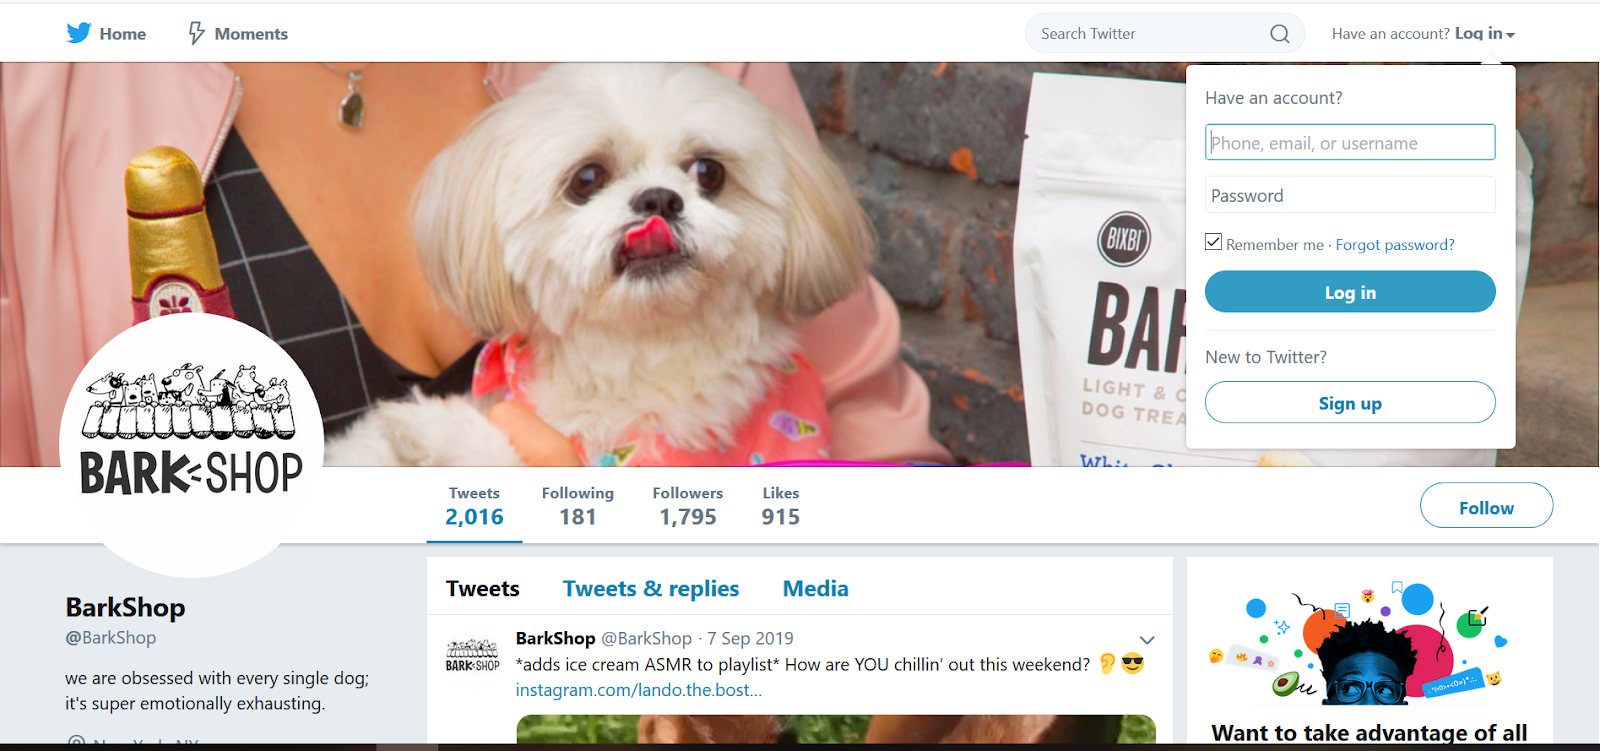 Bark Shop Twitter Page